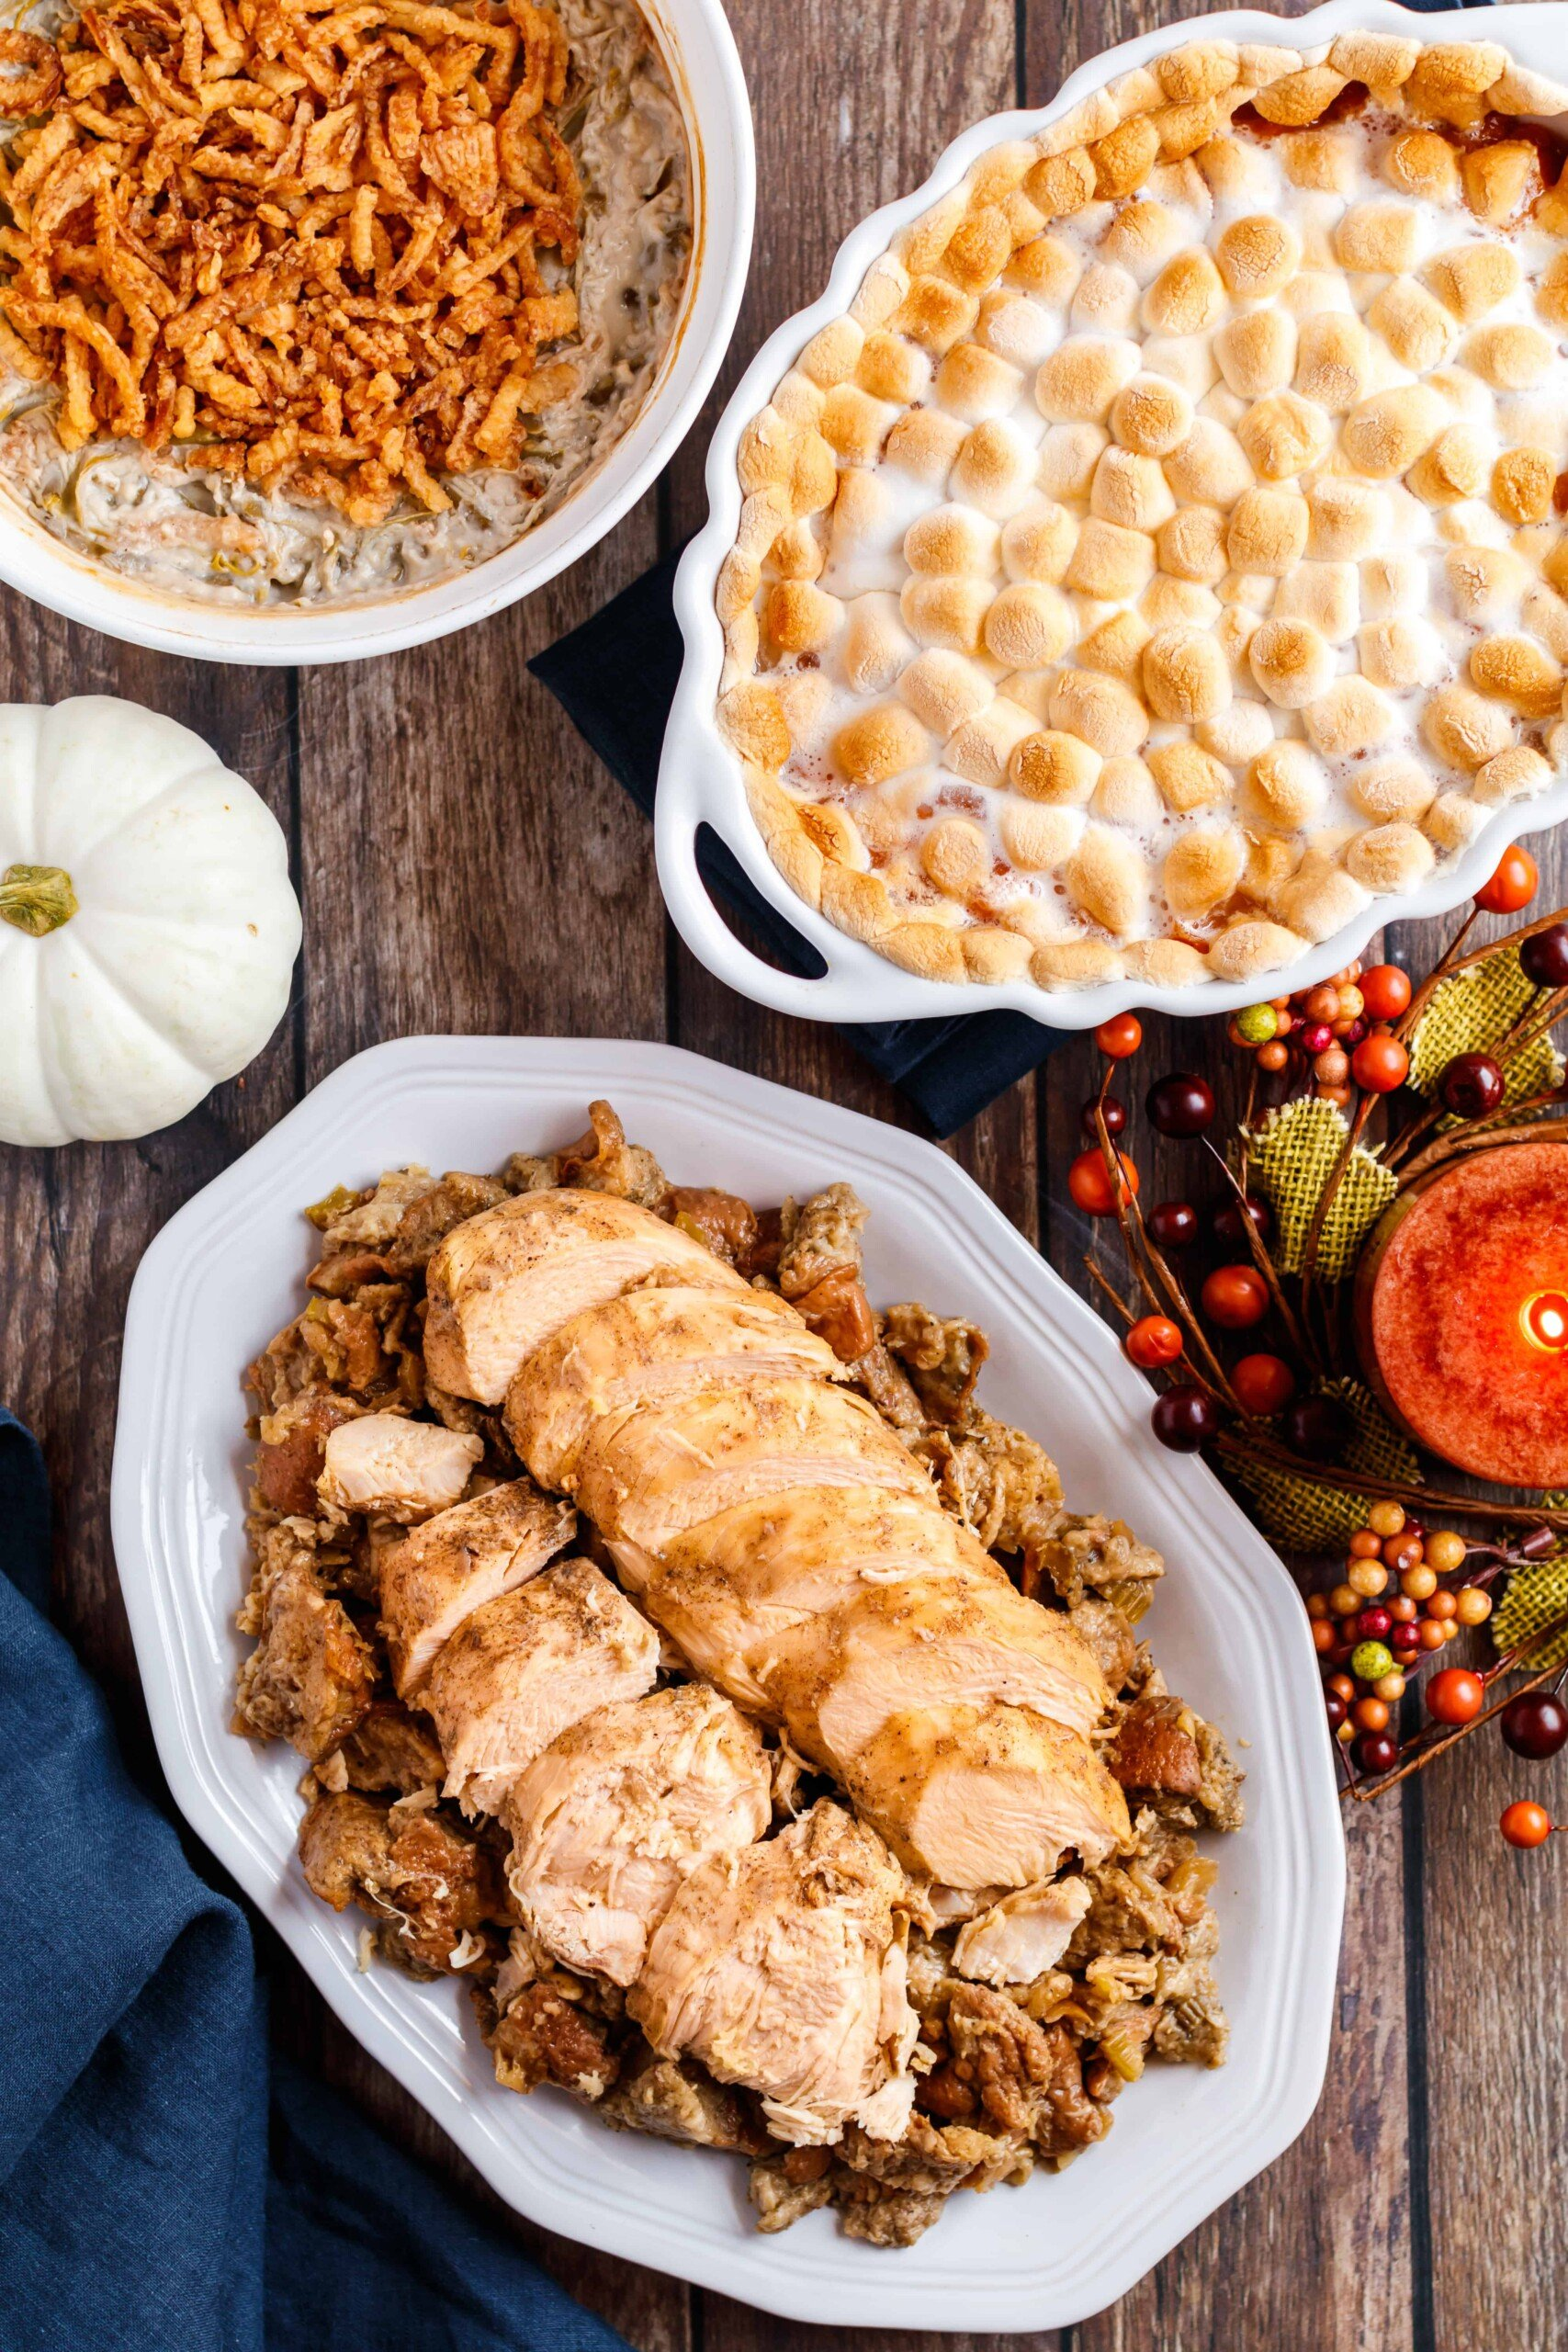 Plate of stuffing topped with sliced turkey breast on a thanksgiving table.